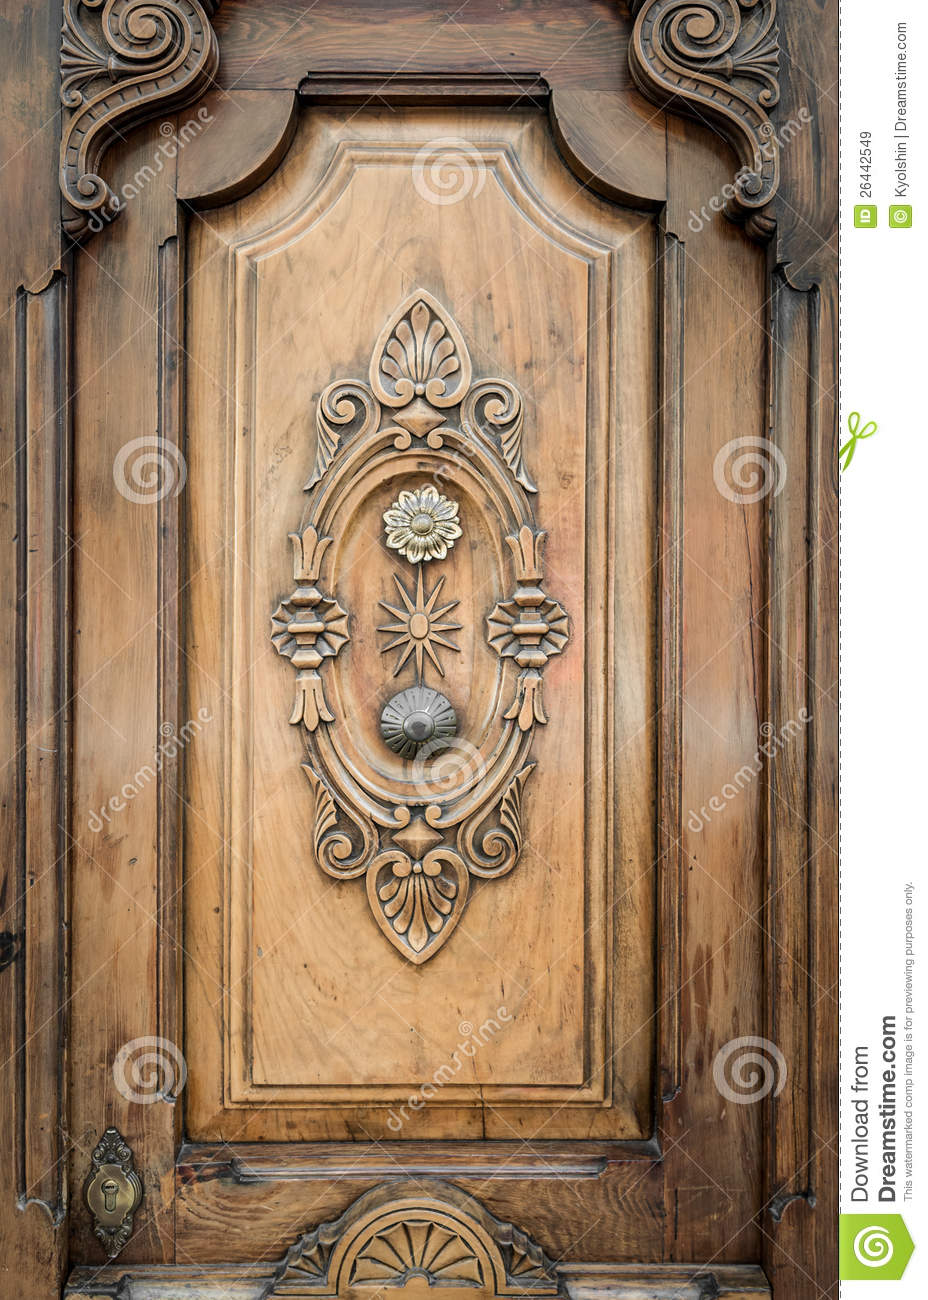 Old Door Of Wood With Patterns Carved On It. Royalty Free Stock ...